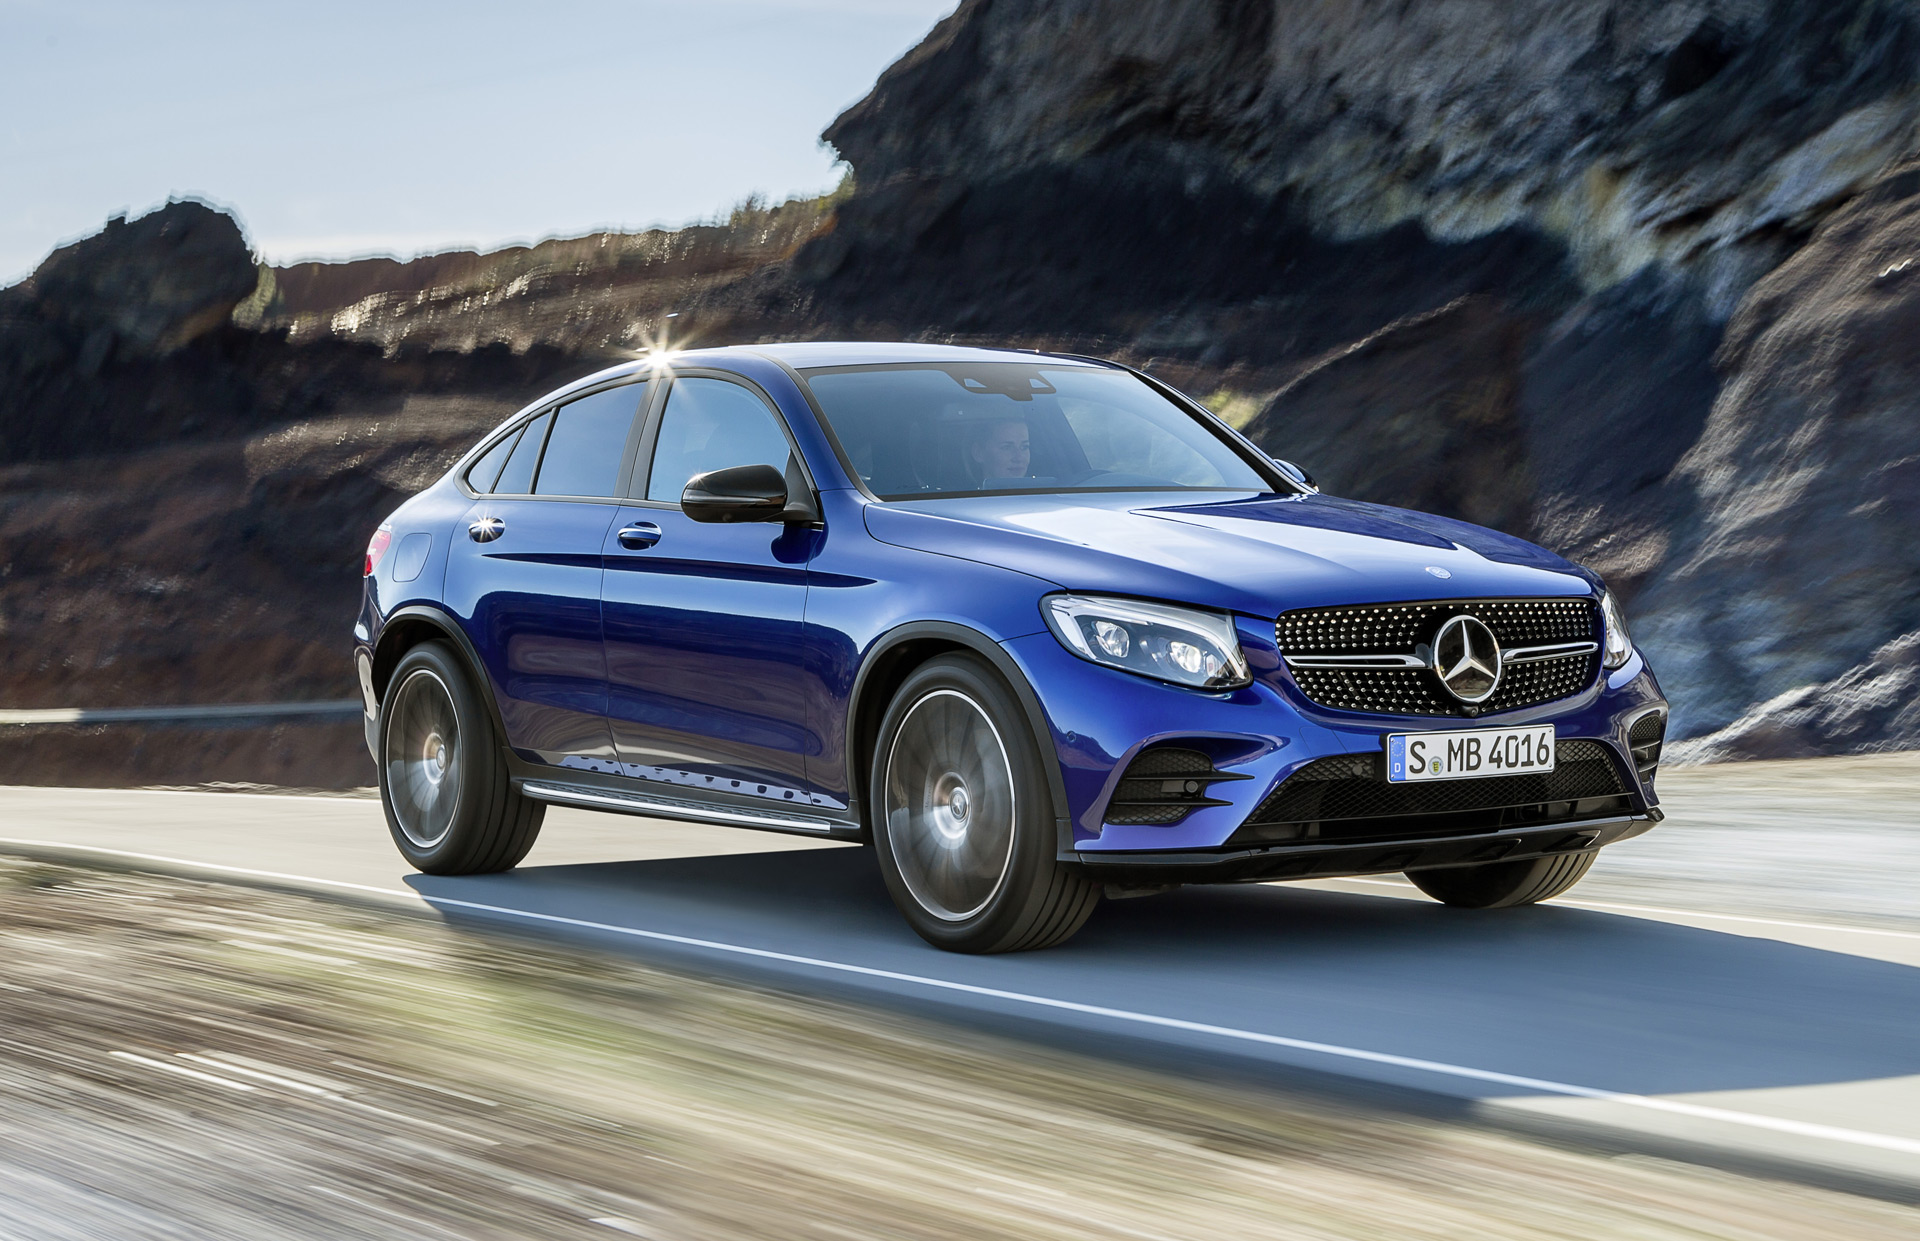 The Mercedes Benz Glc Coupe Is Not A And Neither Are These Other Things Either